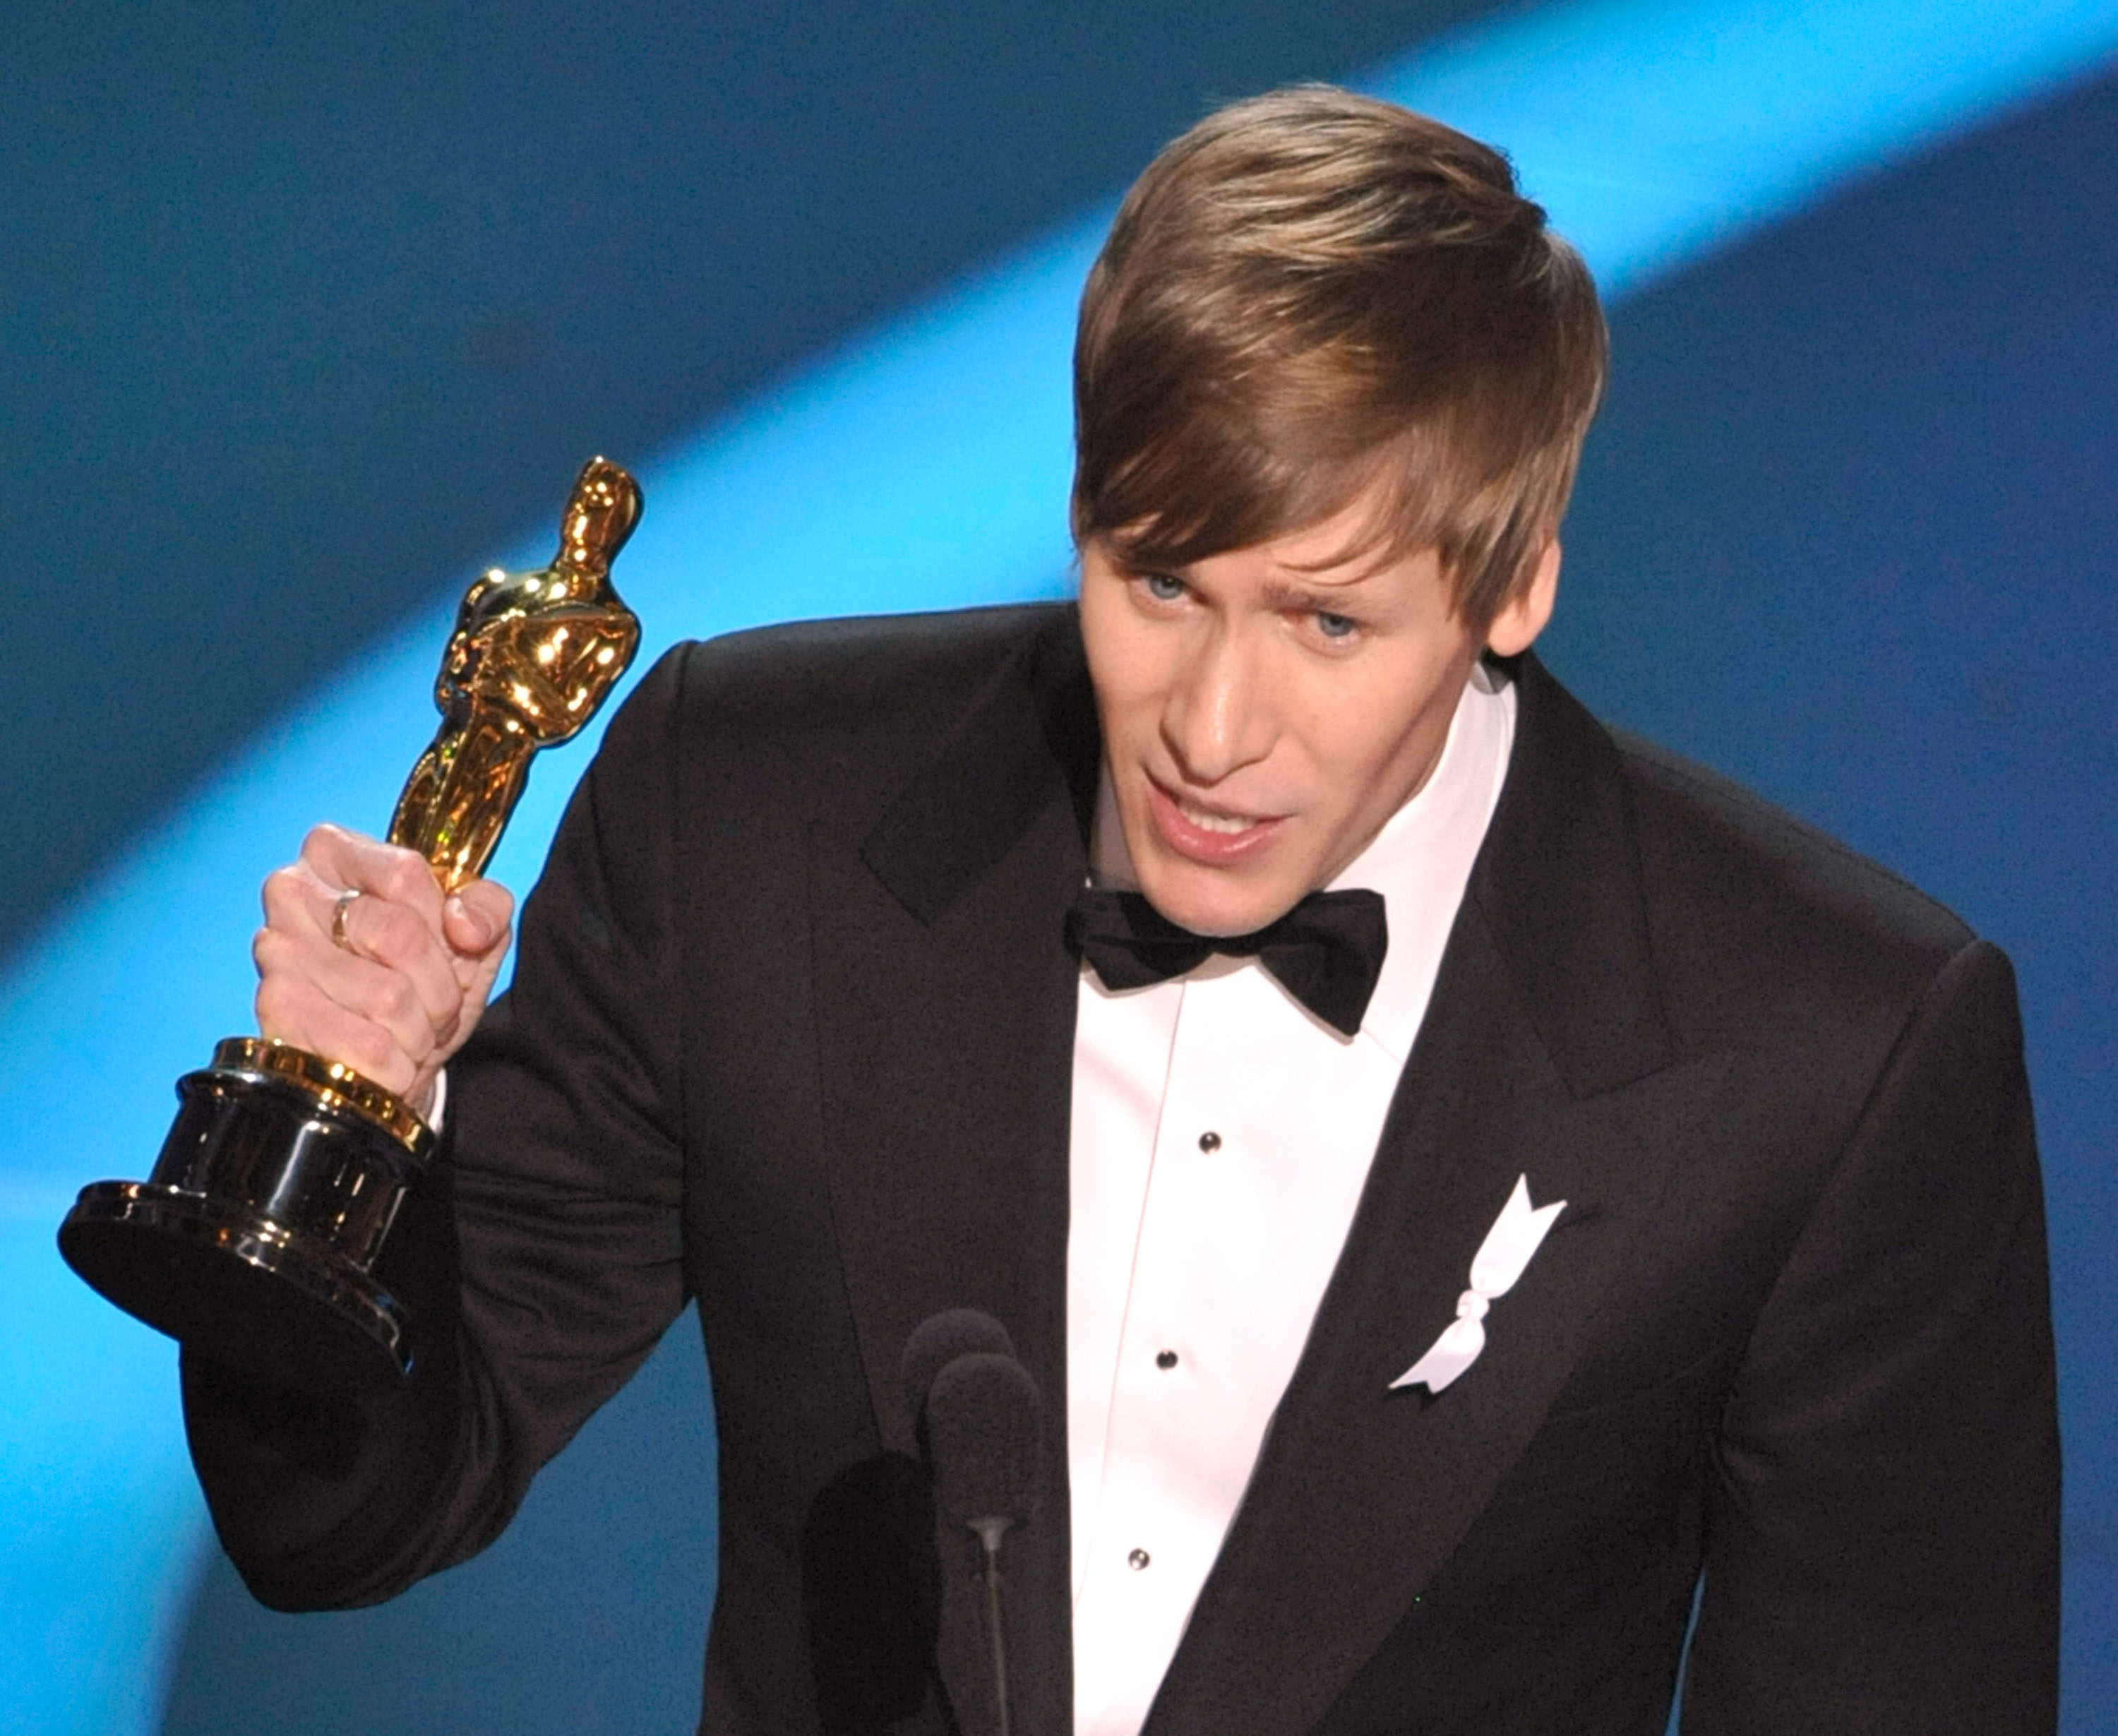 "LOS ANGELES, CA - FEBRUARY 22:  (EDITORS NOTE: NO ONLINE, NO INTERNET, EMBARGOED FROM INTERNET AND TELEVISION USAGE UNTIL THE CONCLUSION OF THE LIVE OSCARS TELECAST)  Screenwriter Dustin Lance Black receives his Best Original Screenplay award for ""Milk"" during the 81st Annual Academy Awards held at Kodak Theatre on February 22, 2009 in Los Angeles, California.  (Photo by Kevin Winter/Getty Images)"